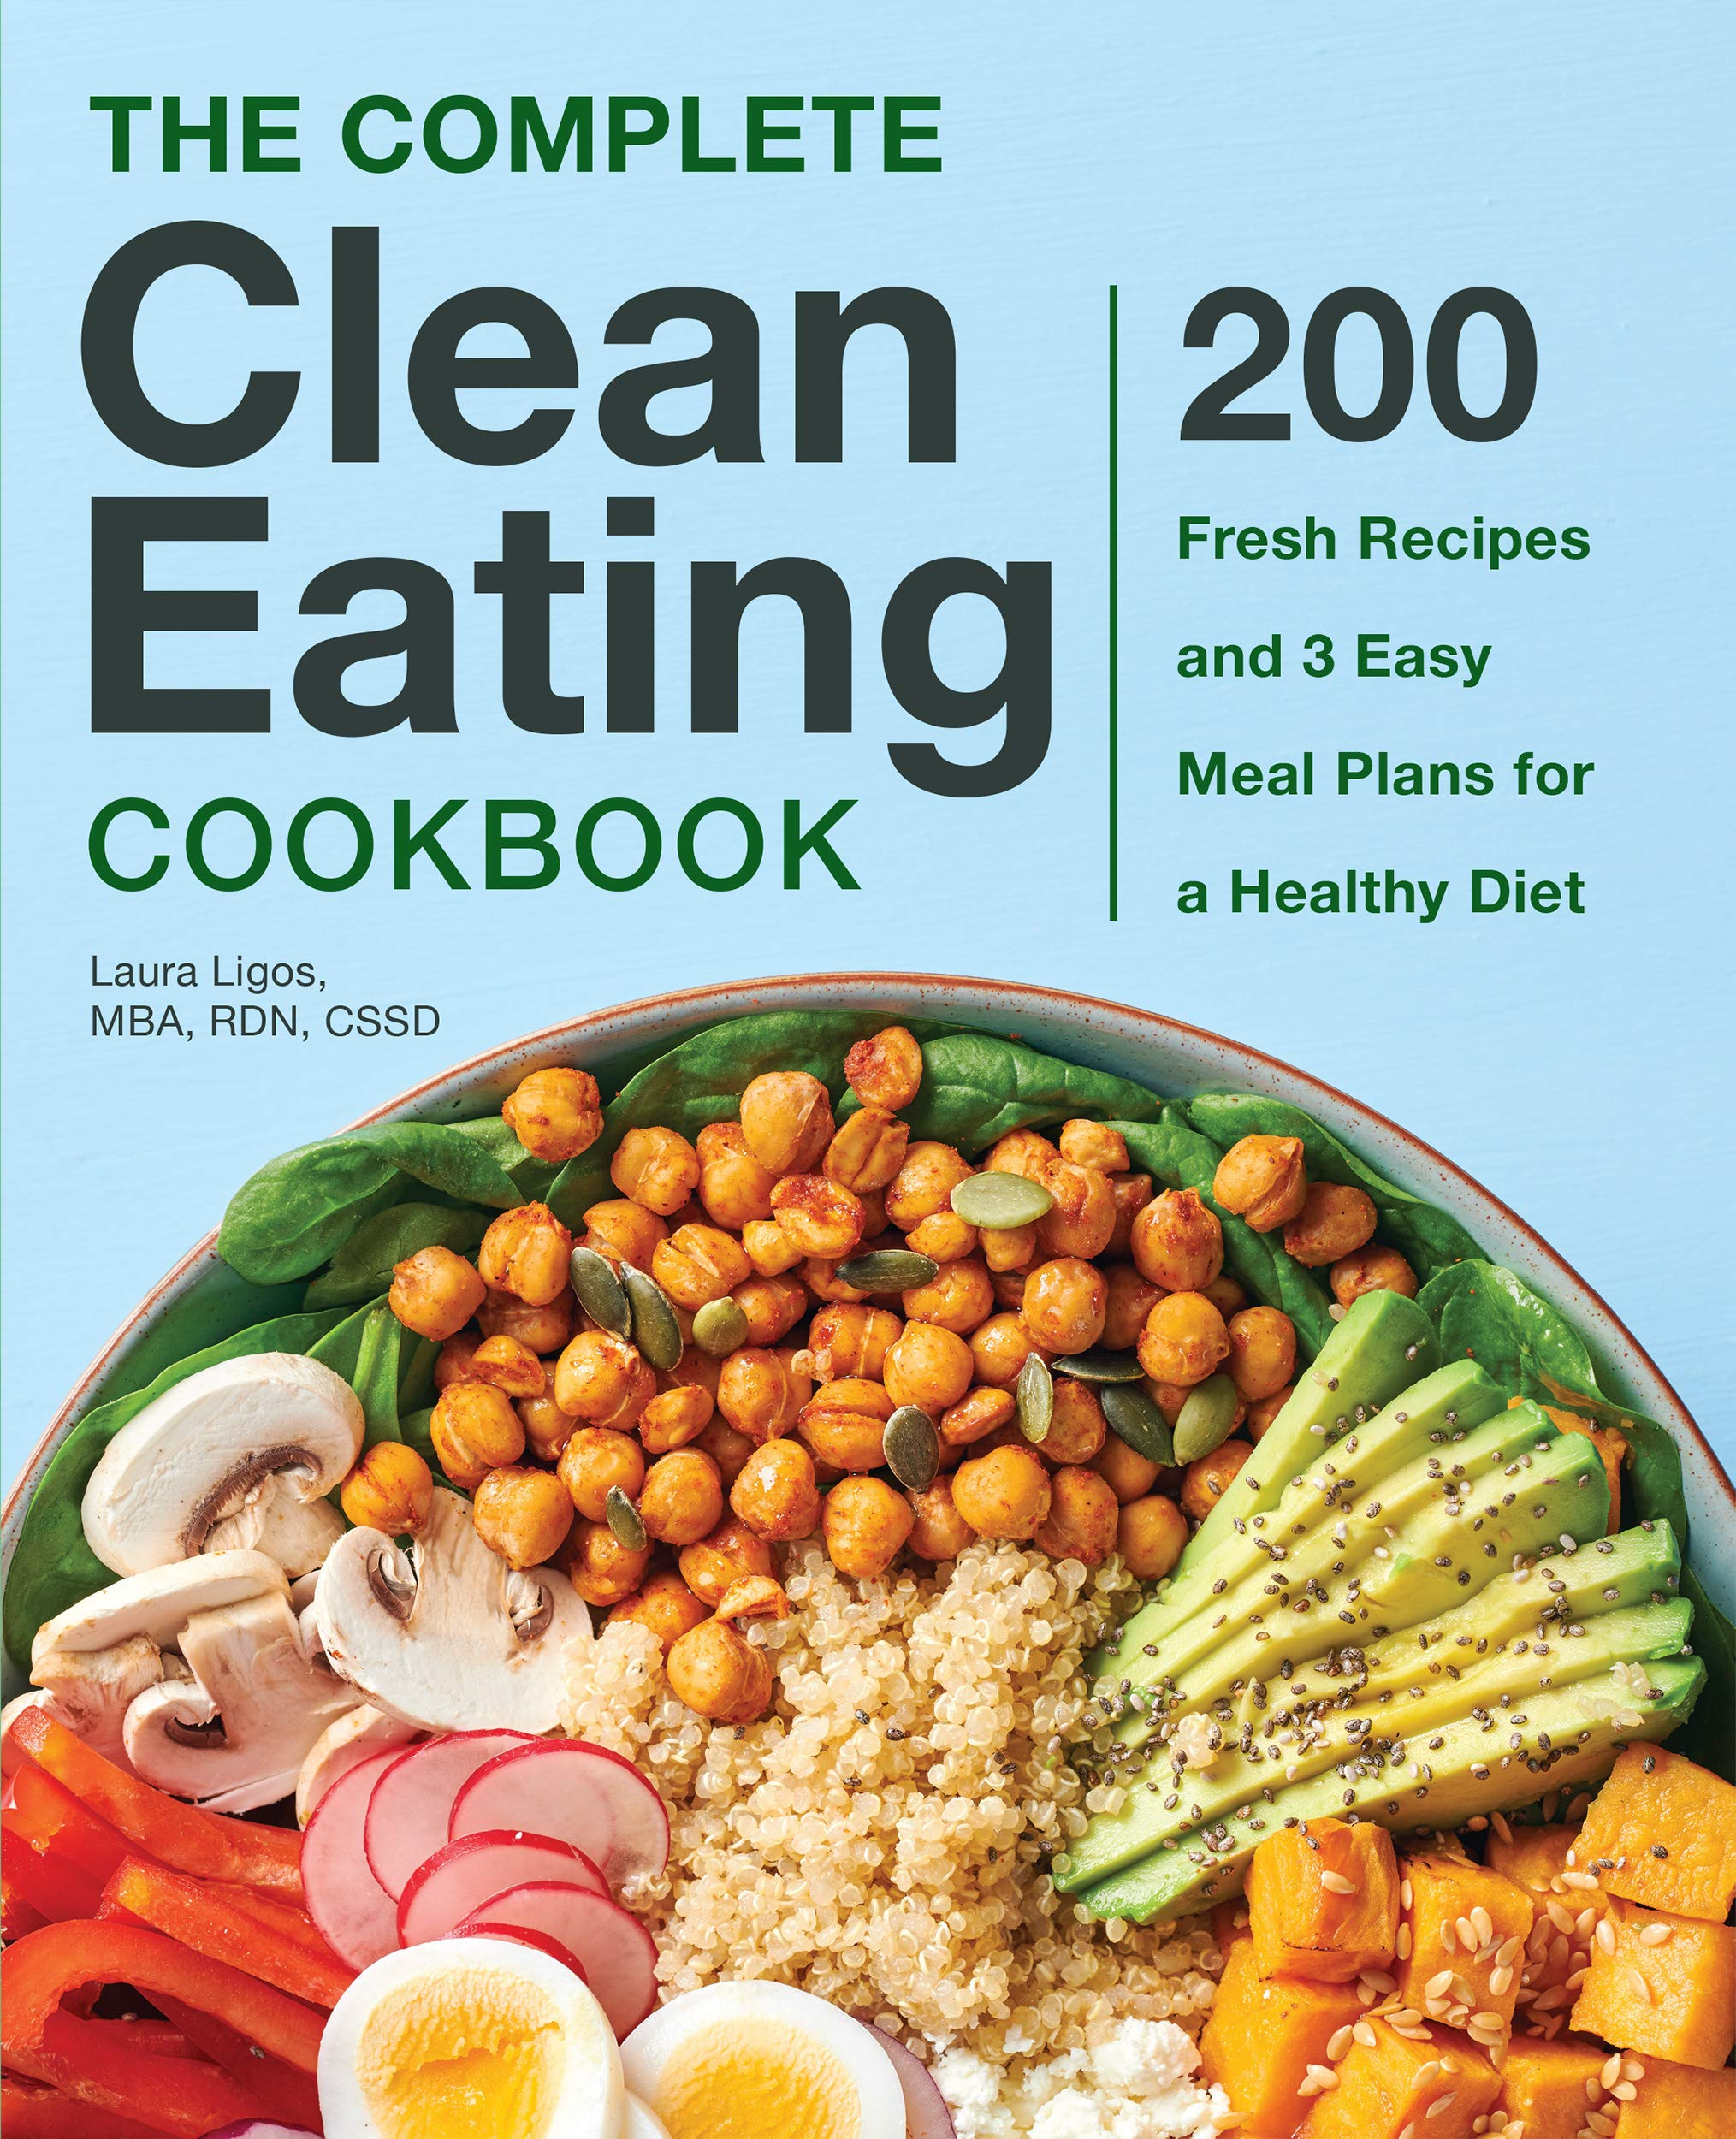 The Complete Clean Eating Cookbook: 200 Fresh Recipes and three Easy Meal Plans for a Healthy Diet